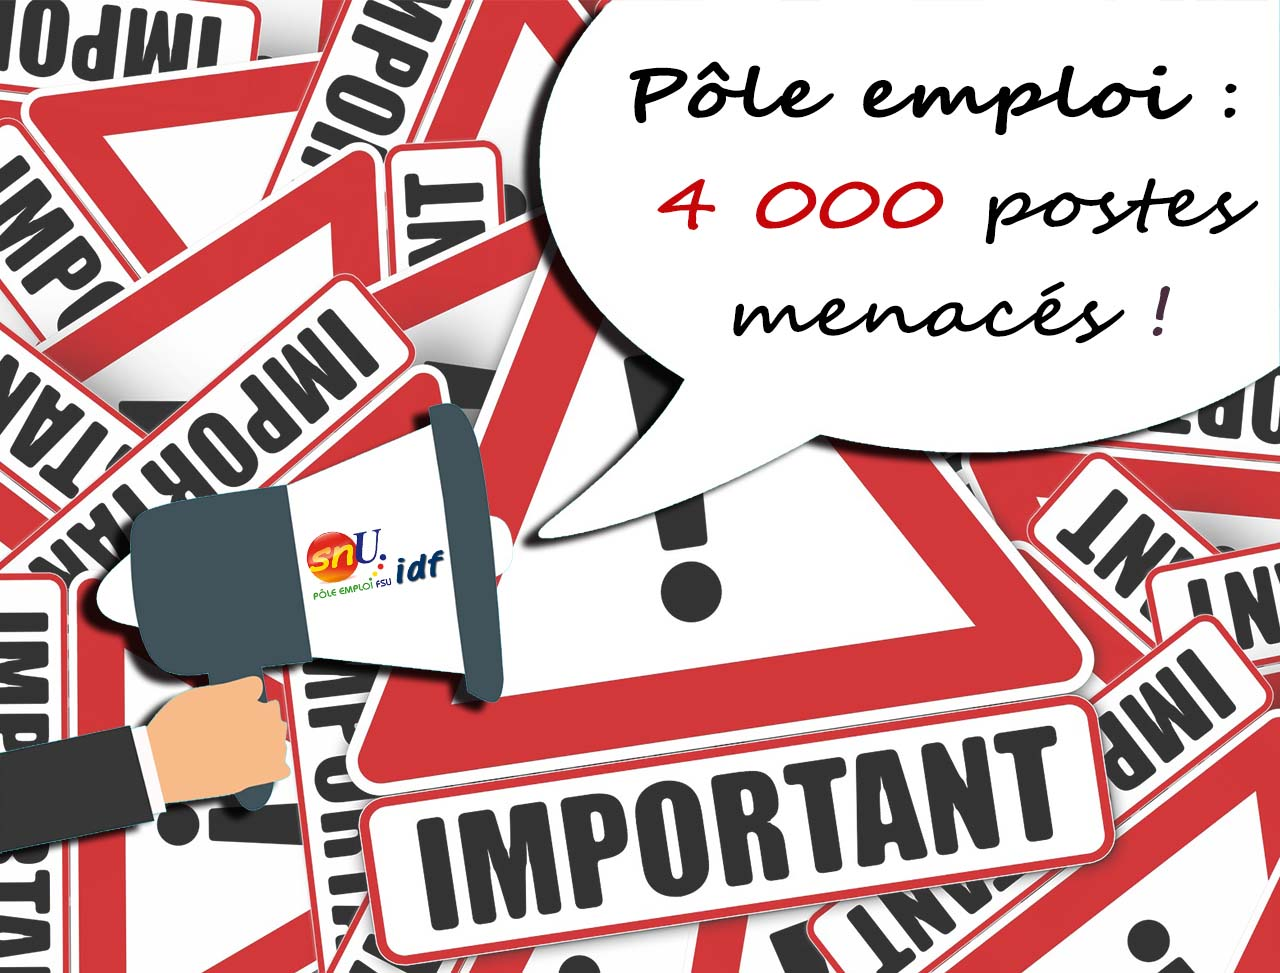 Contre les 4000 suppressions de postes